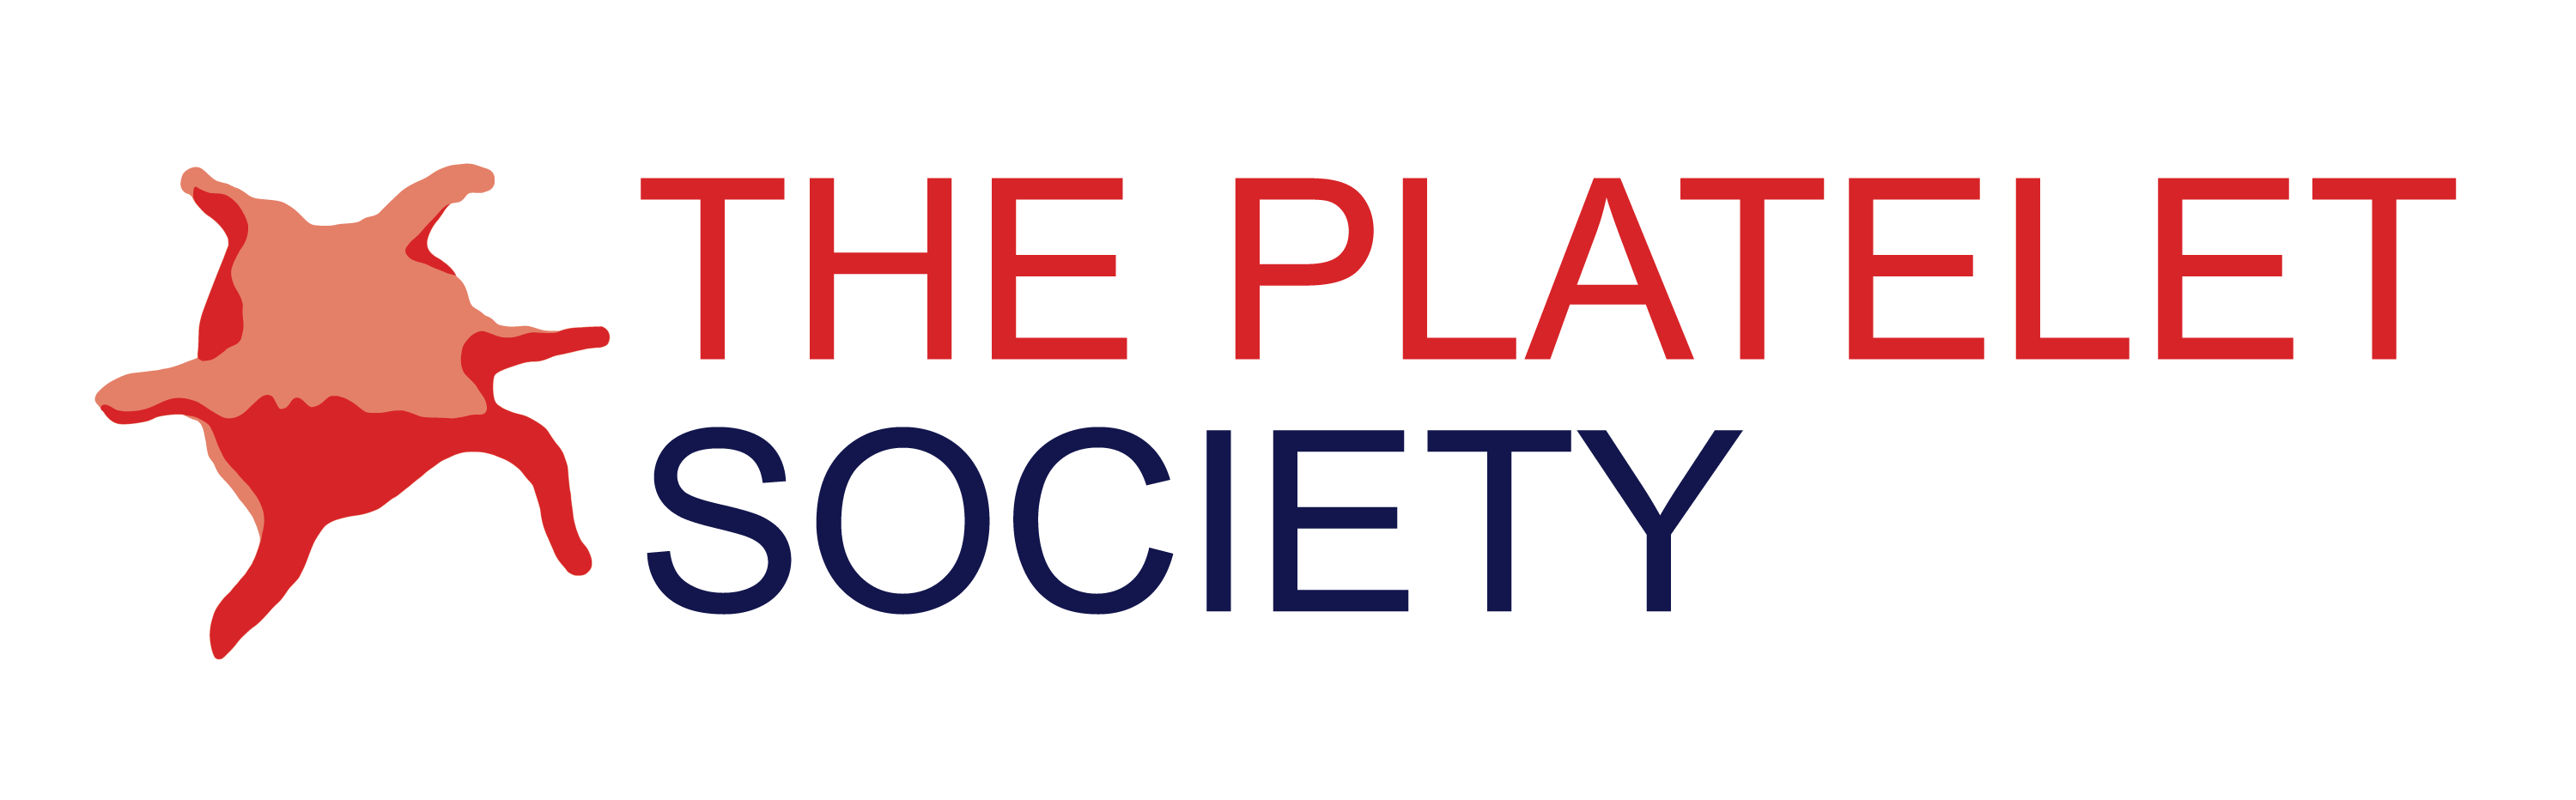 2nd Platelet Society Meeting - Programme & Resources